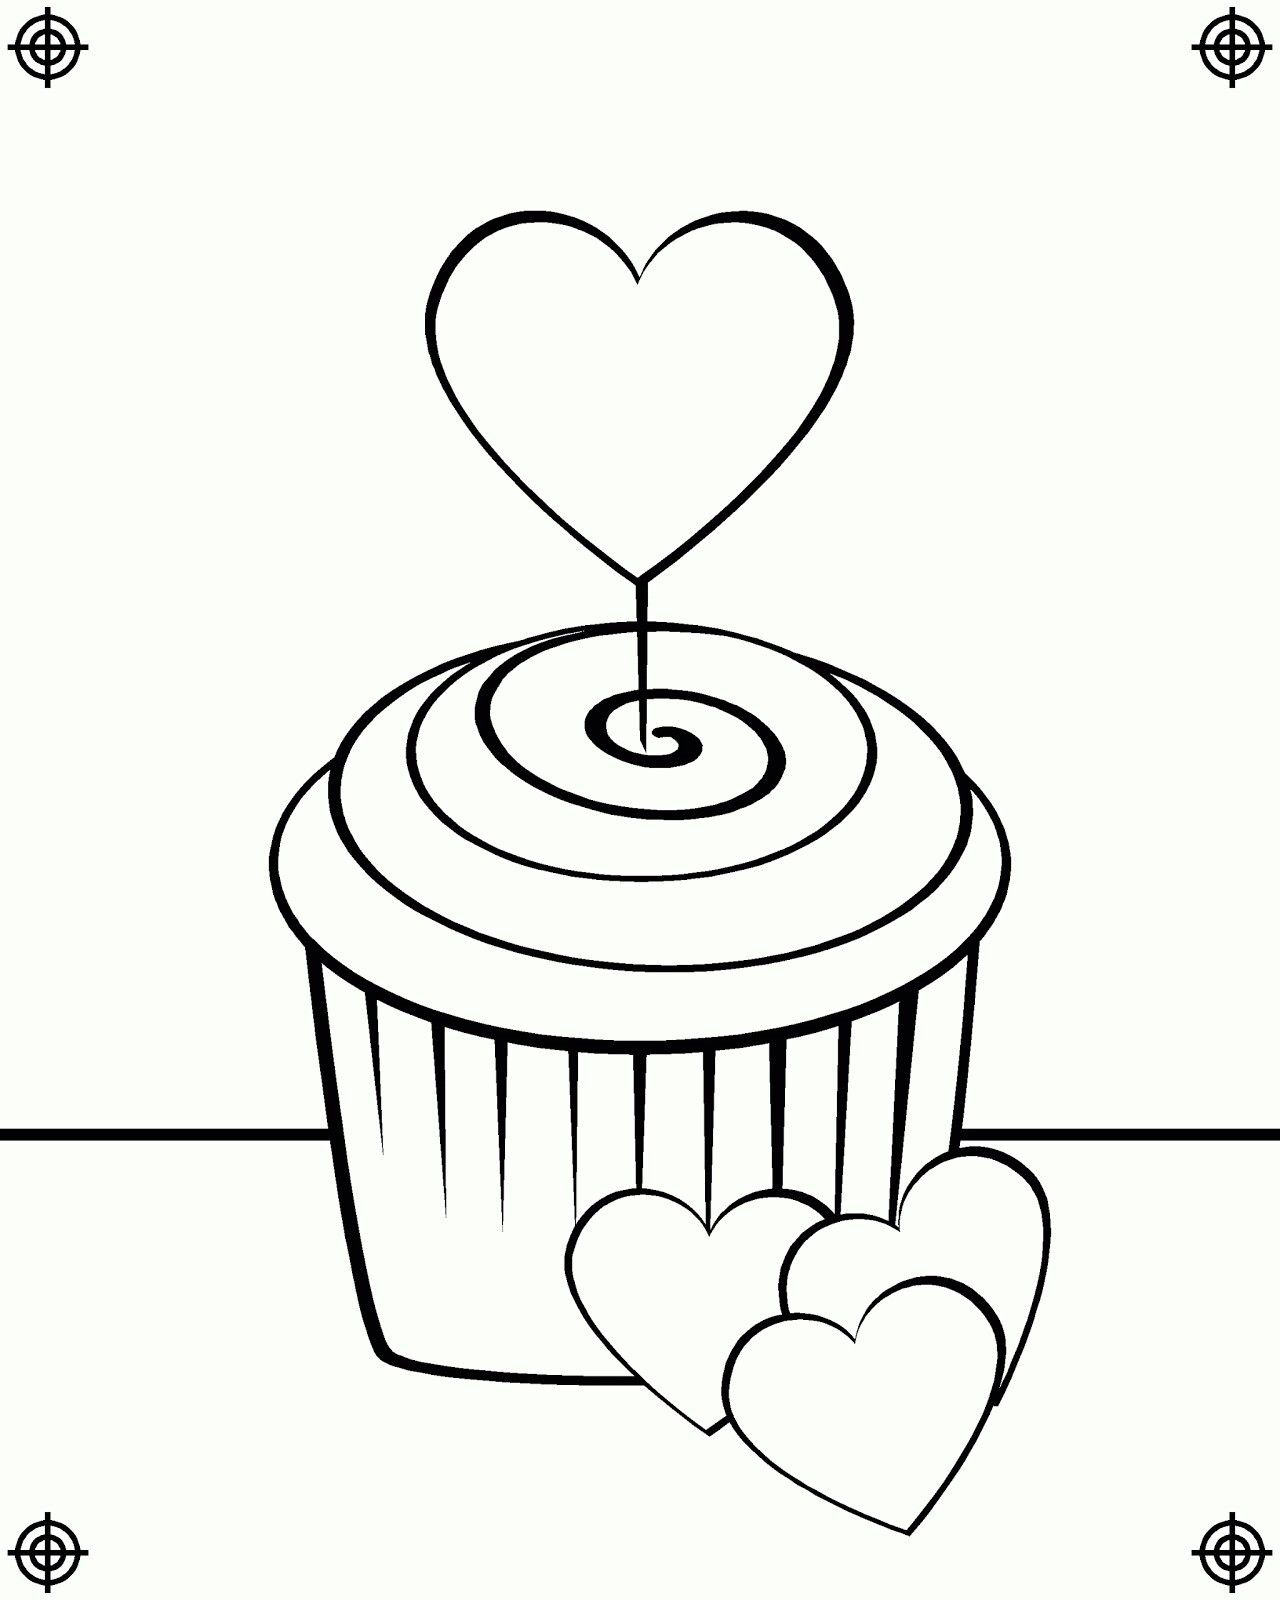 15+ Cupcake coloring pages birthday information